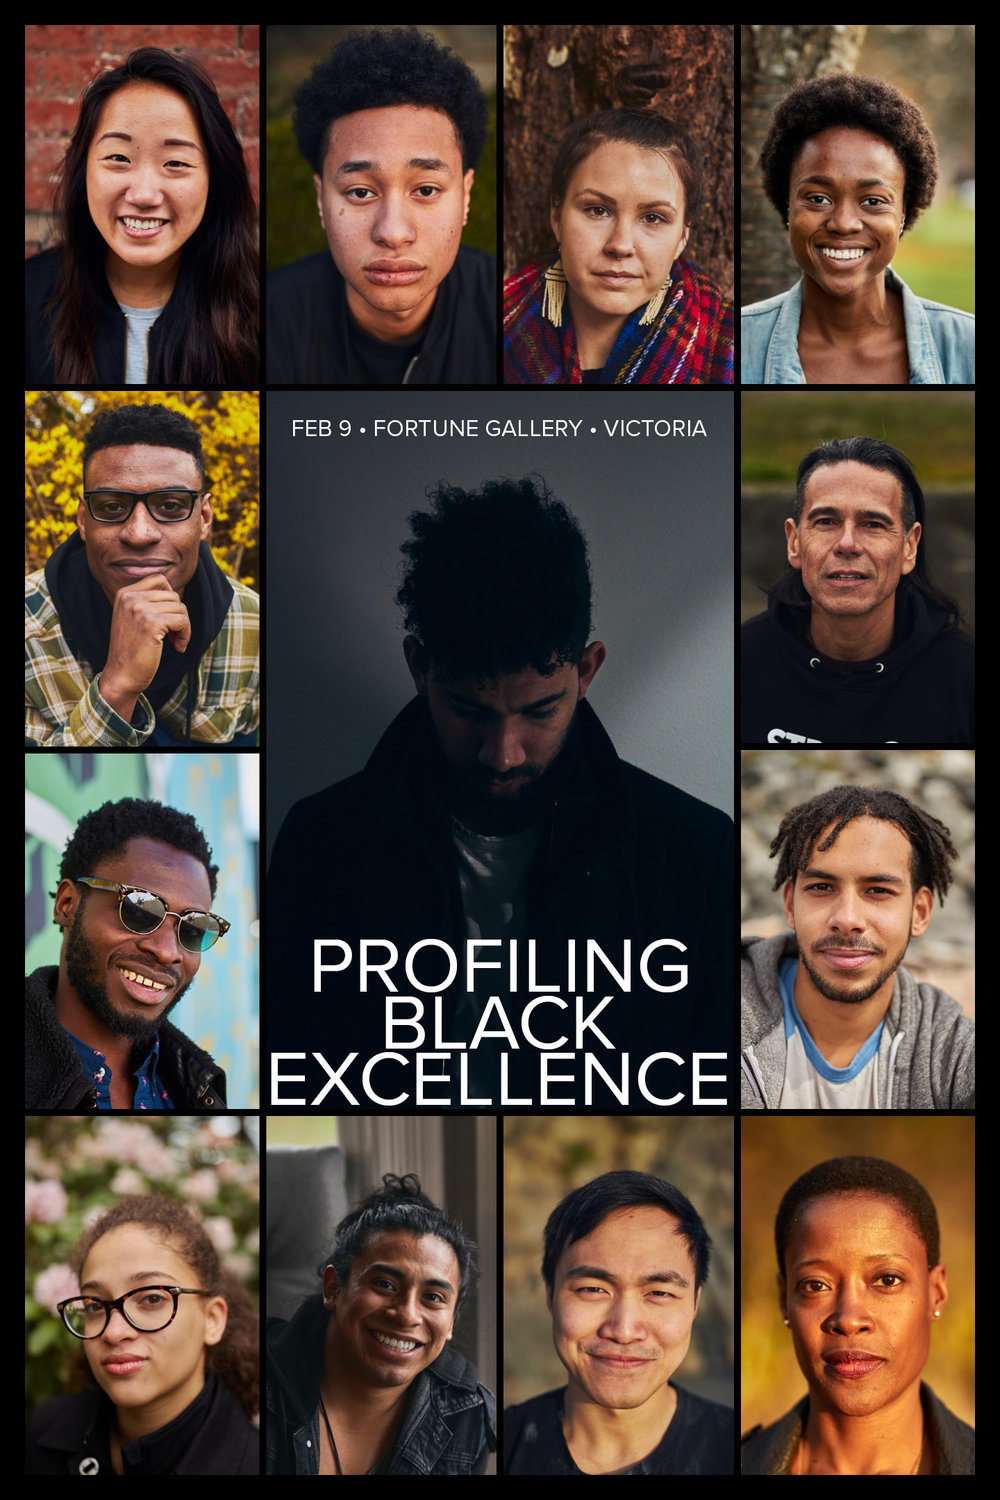 Profiling Black Excellence - Nathan Smith - February 7th - 28th